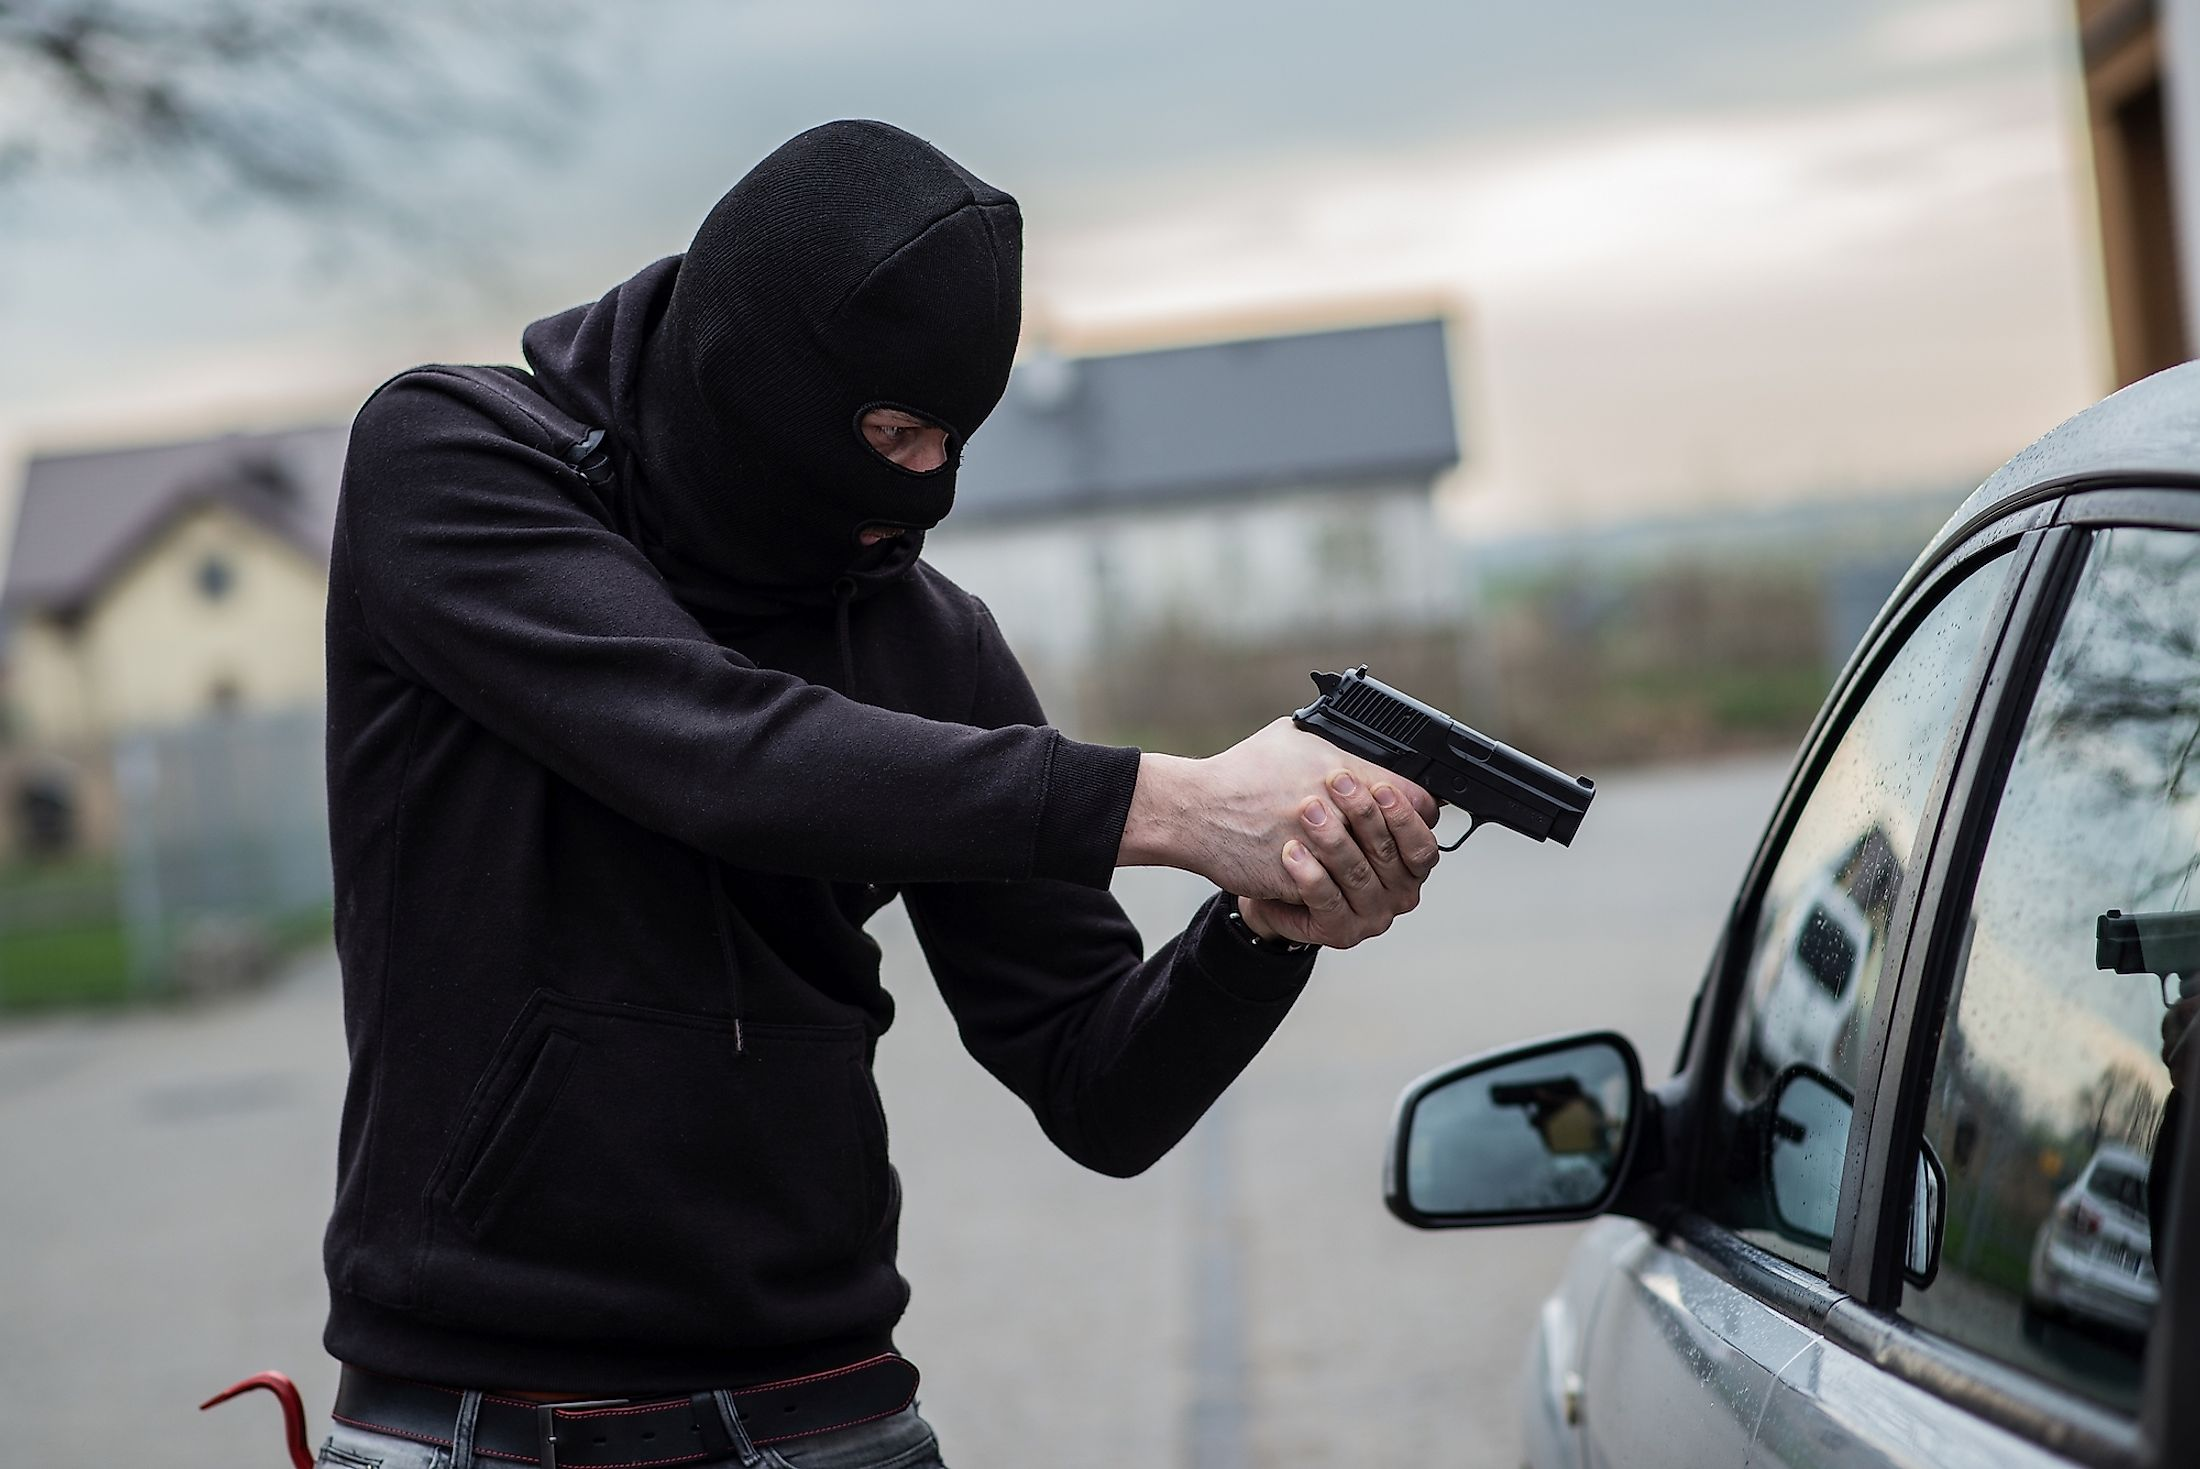 Carjacking is a common theft in many of the world's most dangerous cities.